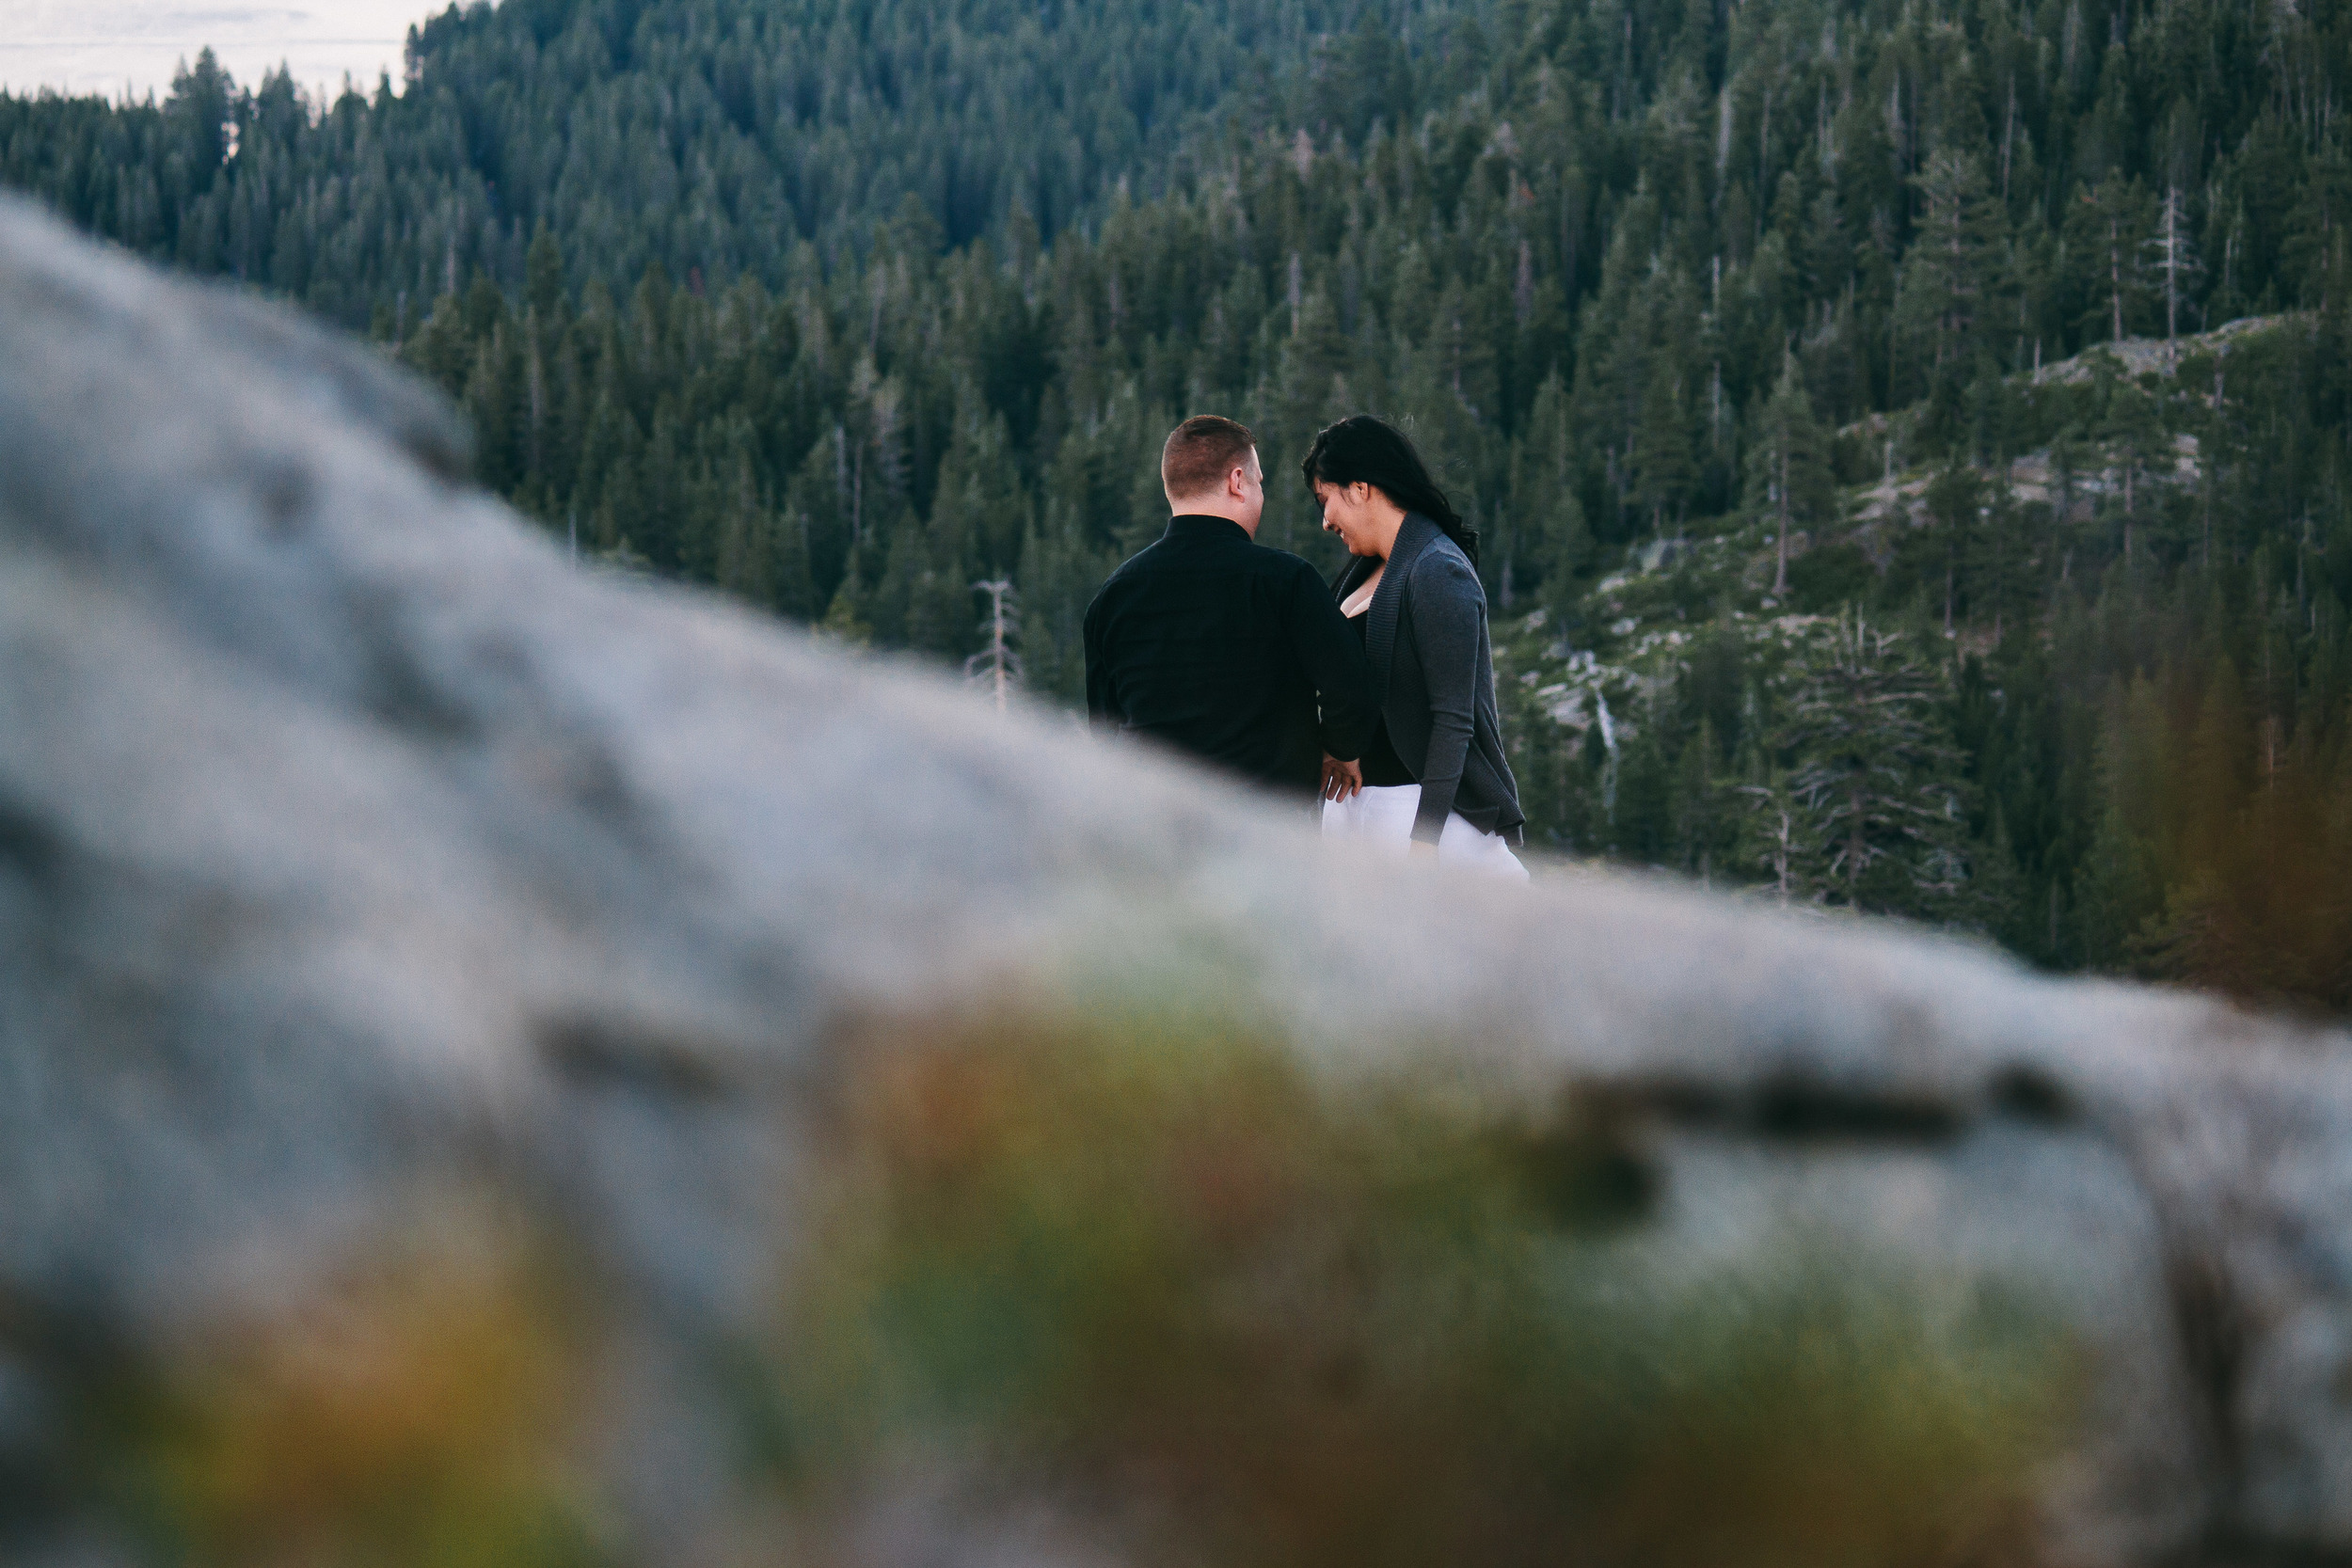 Clint & Veronica's Proposal - Corrie Mick Photography-8.jpg